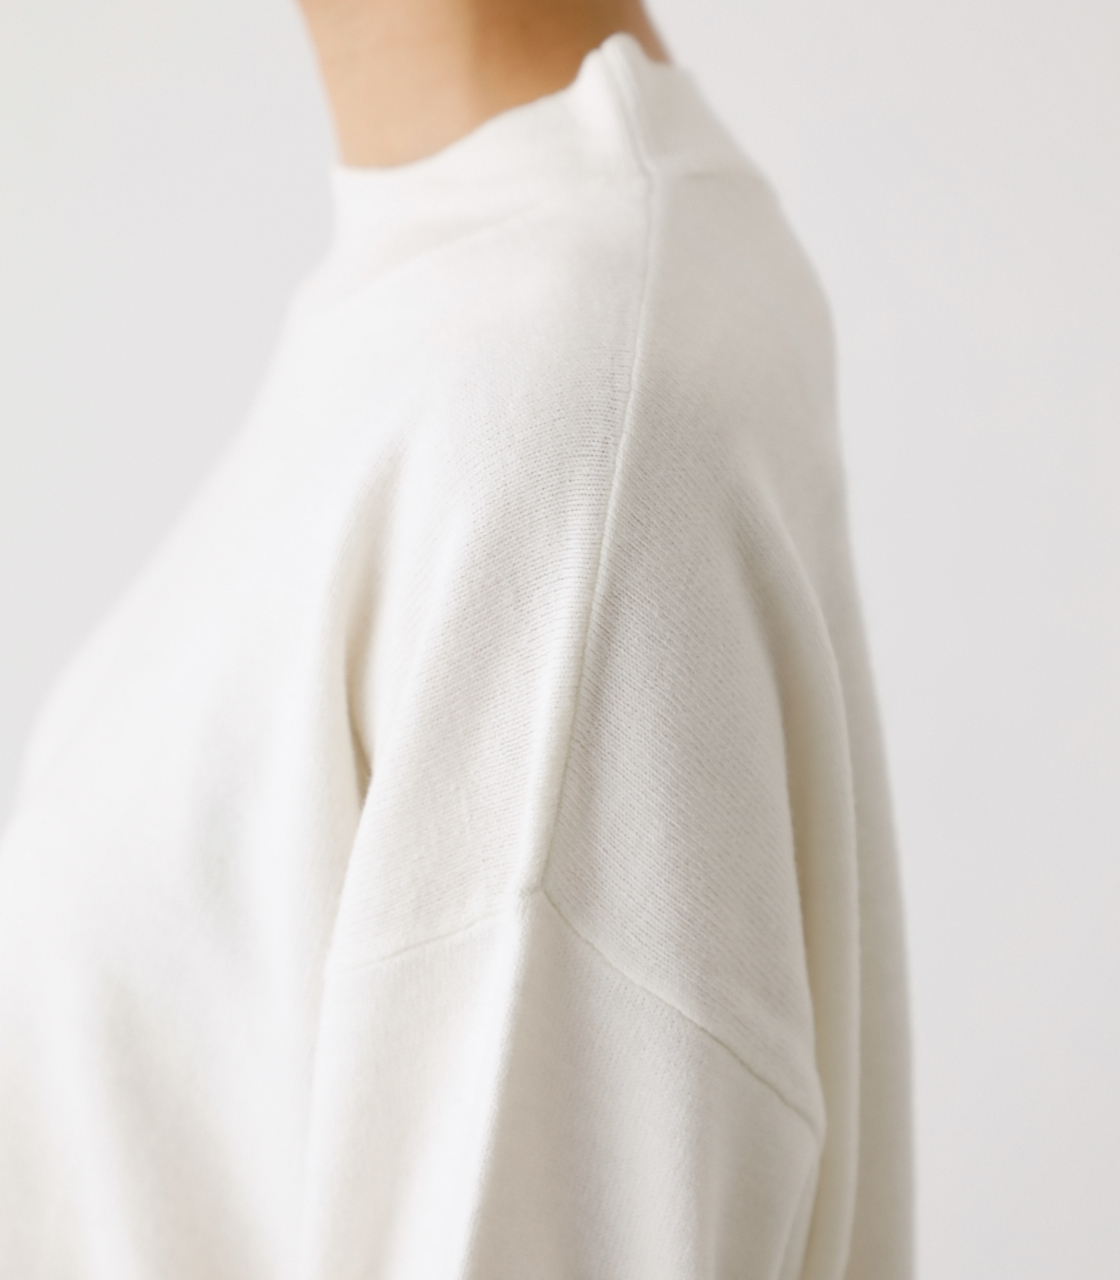 NUDIE H/N KNIT TOPS/ヌーディーハイネックニットトップス【MOOK53掲載 90022】 詳細画像 O/WHT 9